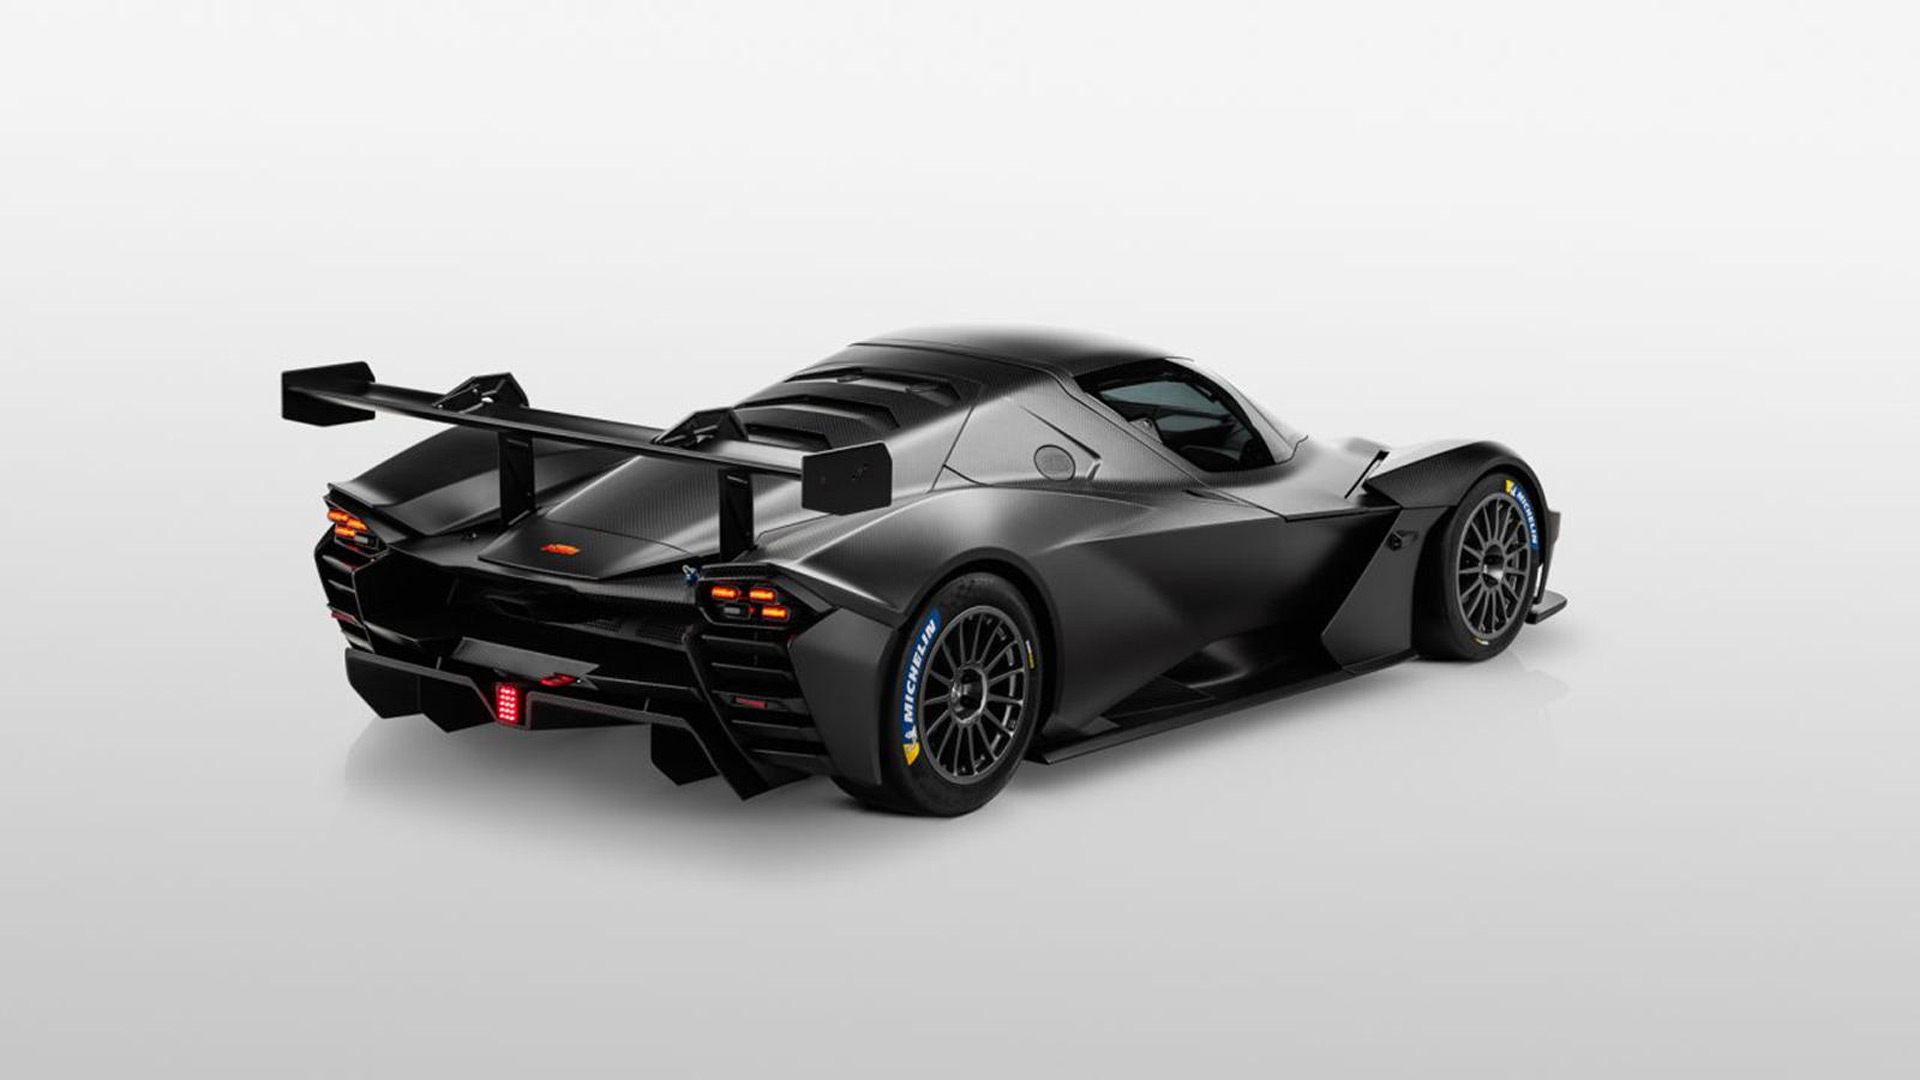 2021-ktm-x-bow-gtx-race-car_100765300_h-1